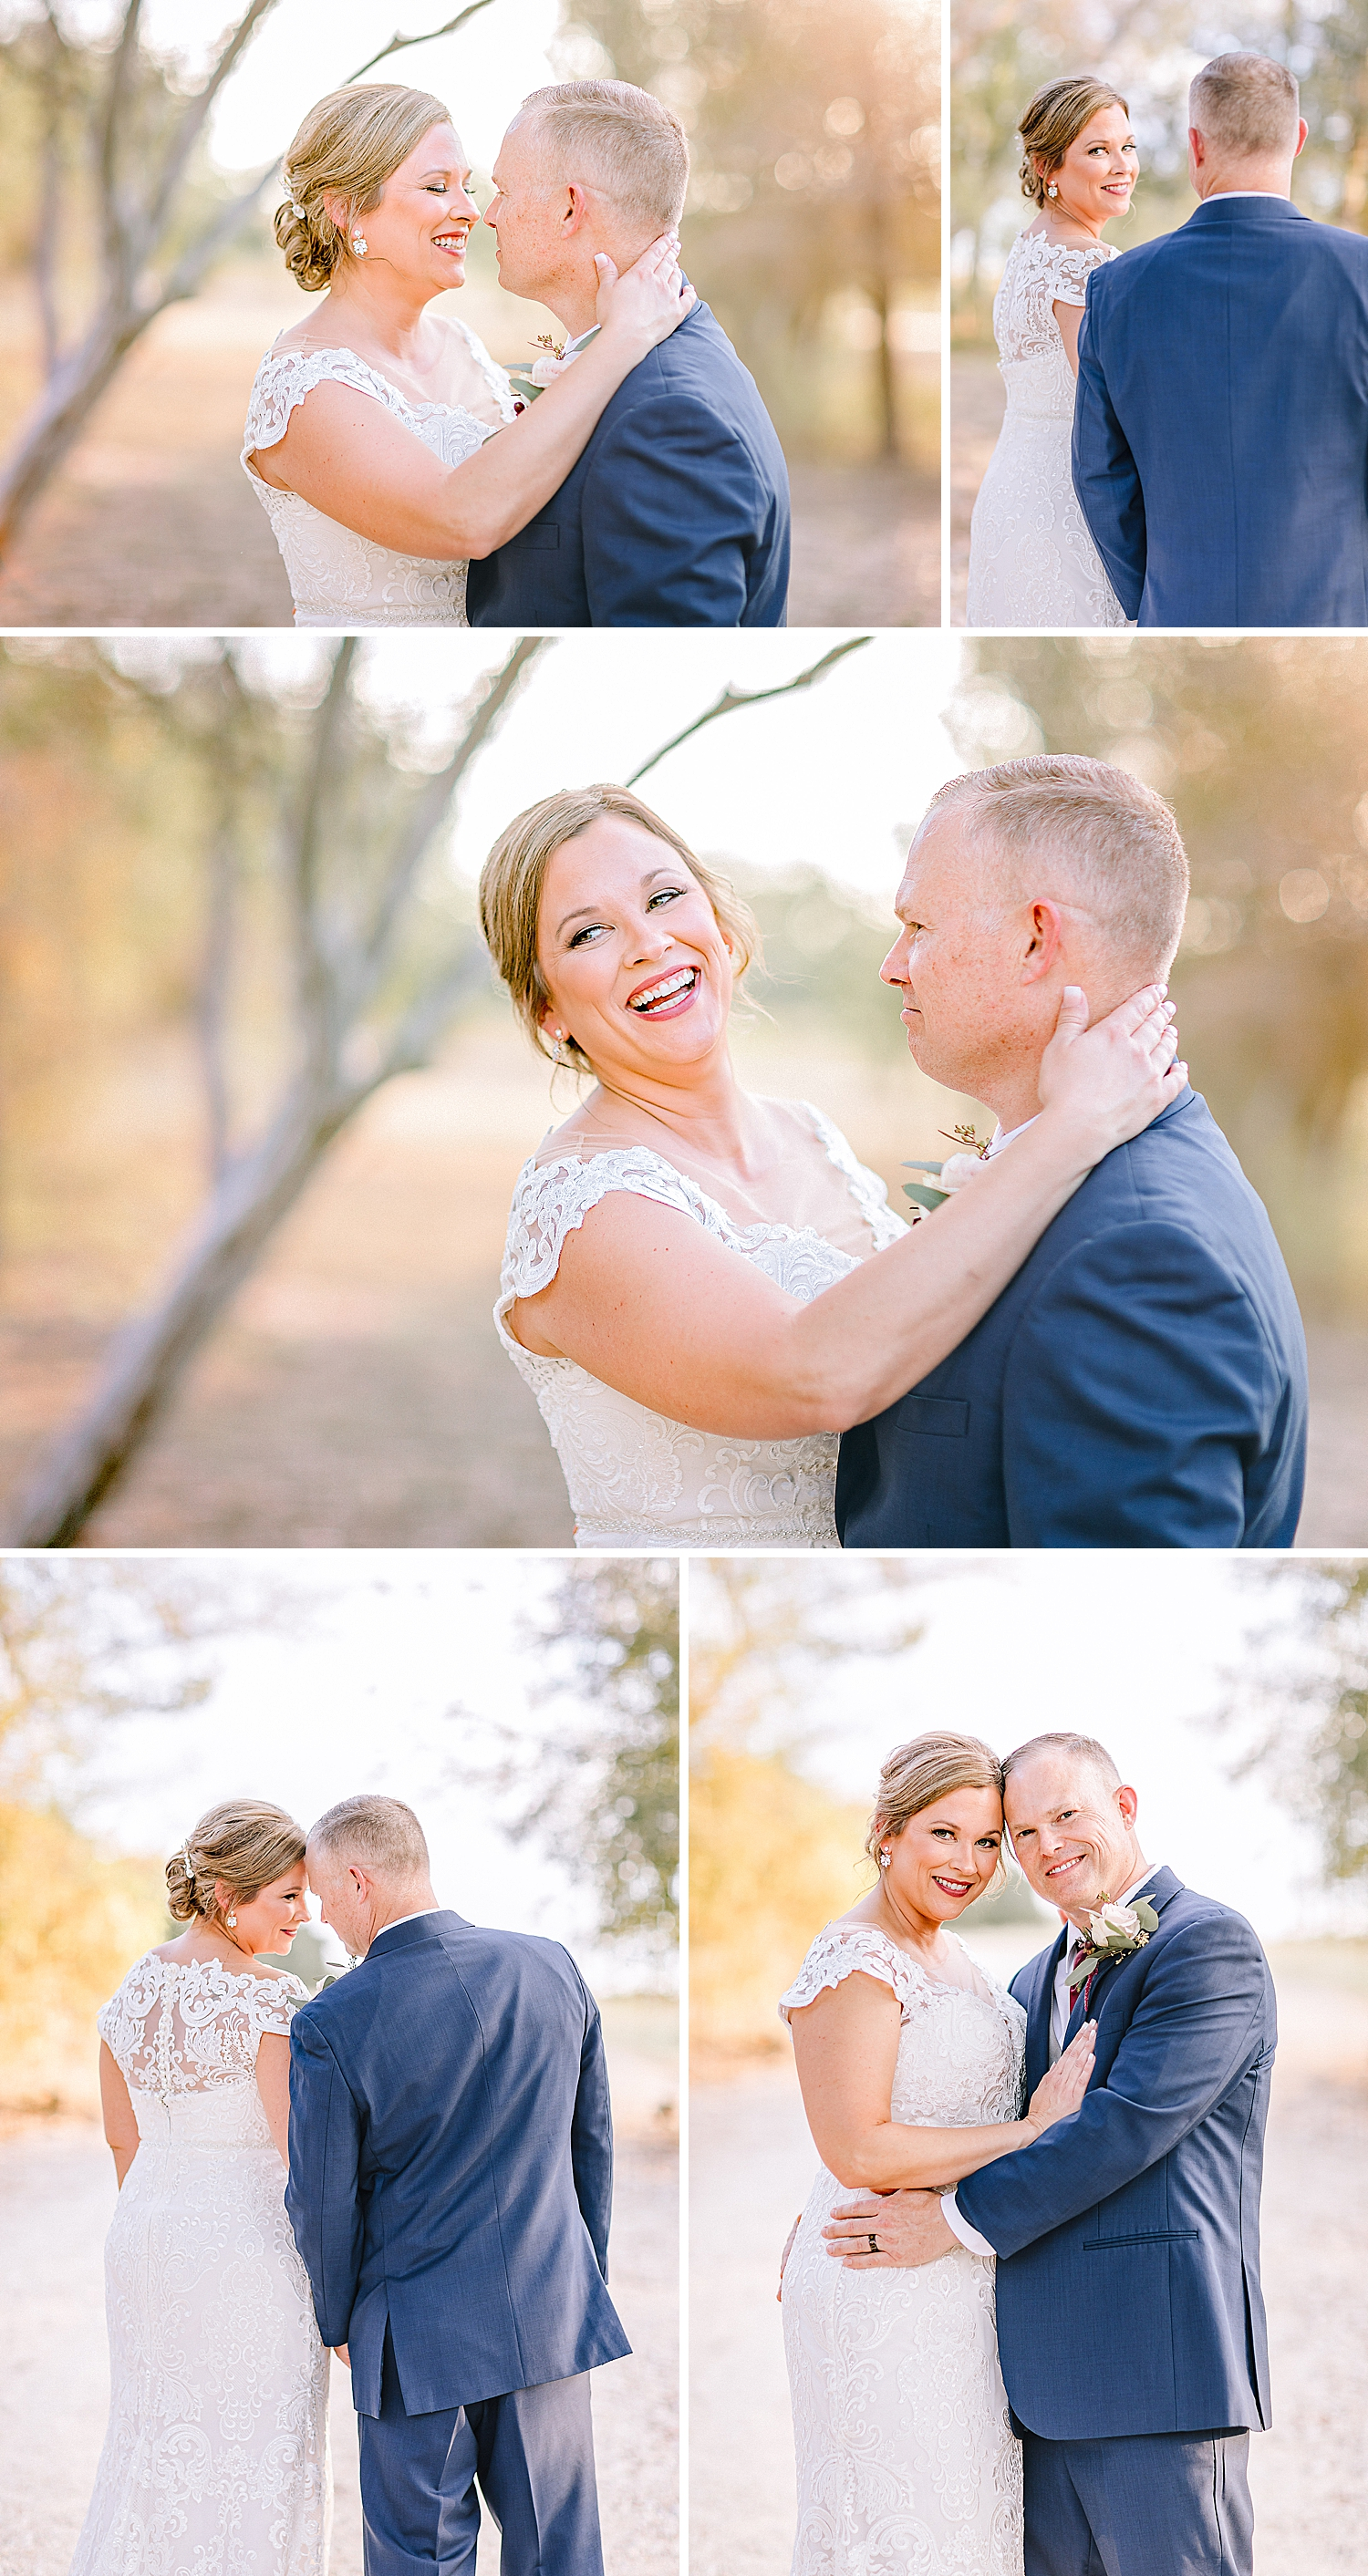 Geronimo-Oaks-Wedding-Venue-Seguin-Texas-Elegant-Navy-Burgundy-Wedding-Carly-Barton-Photography_0049.jpg